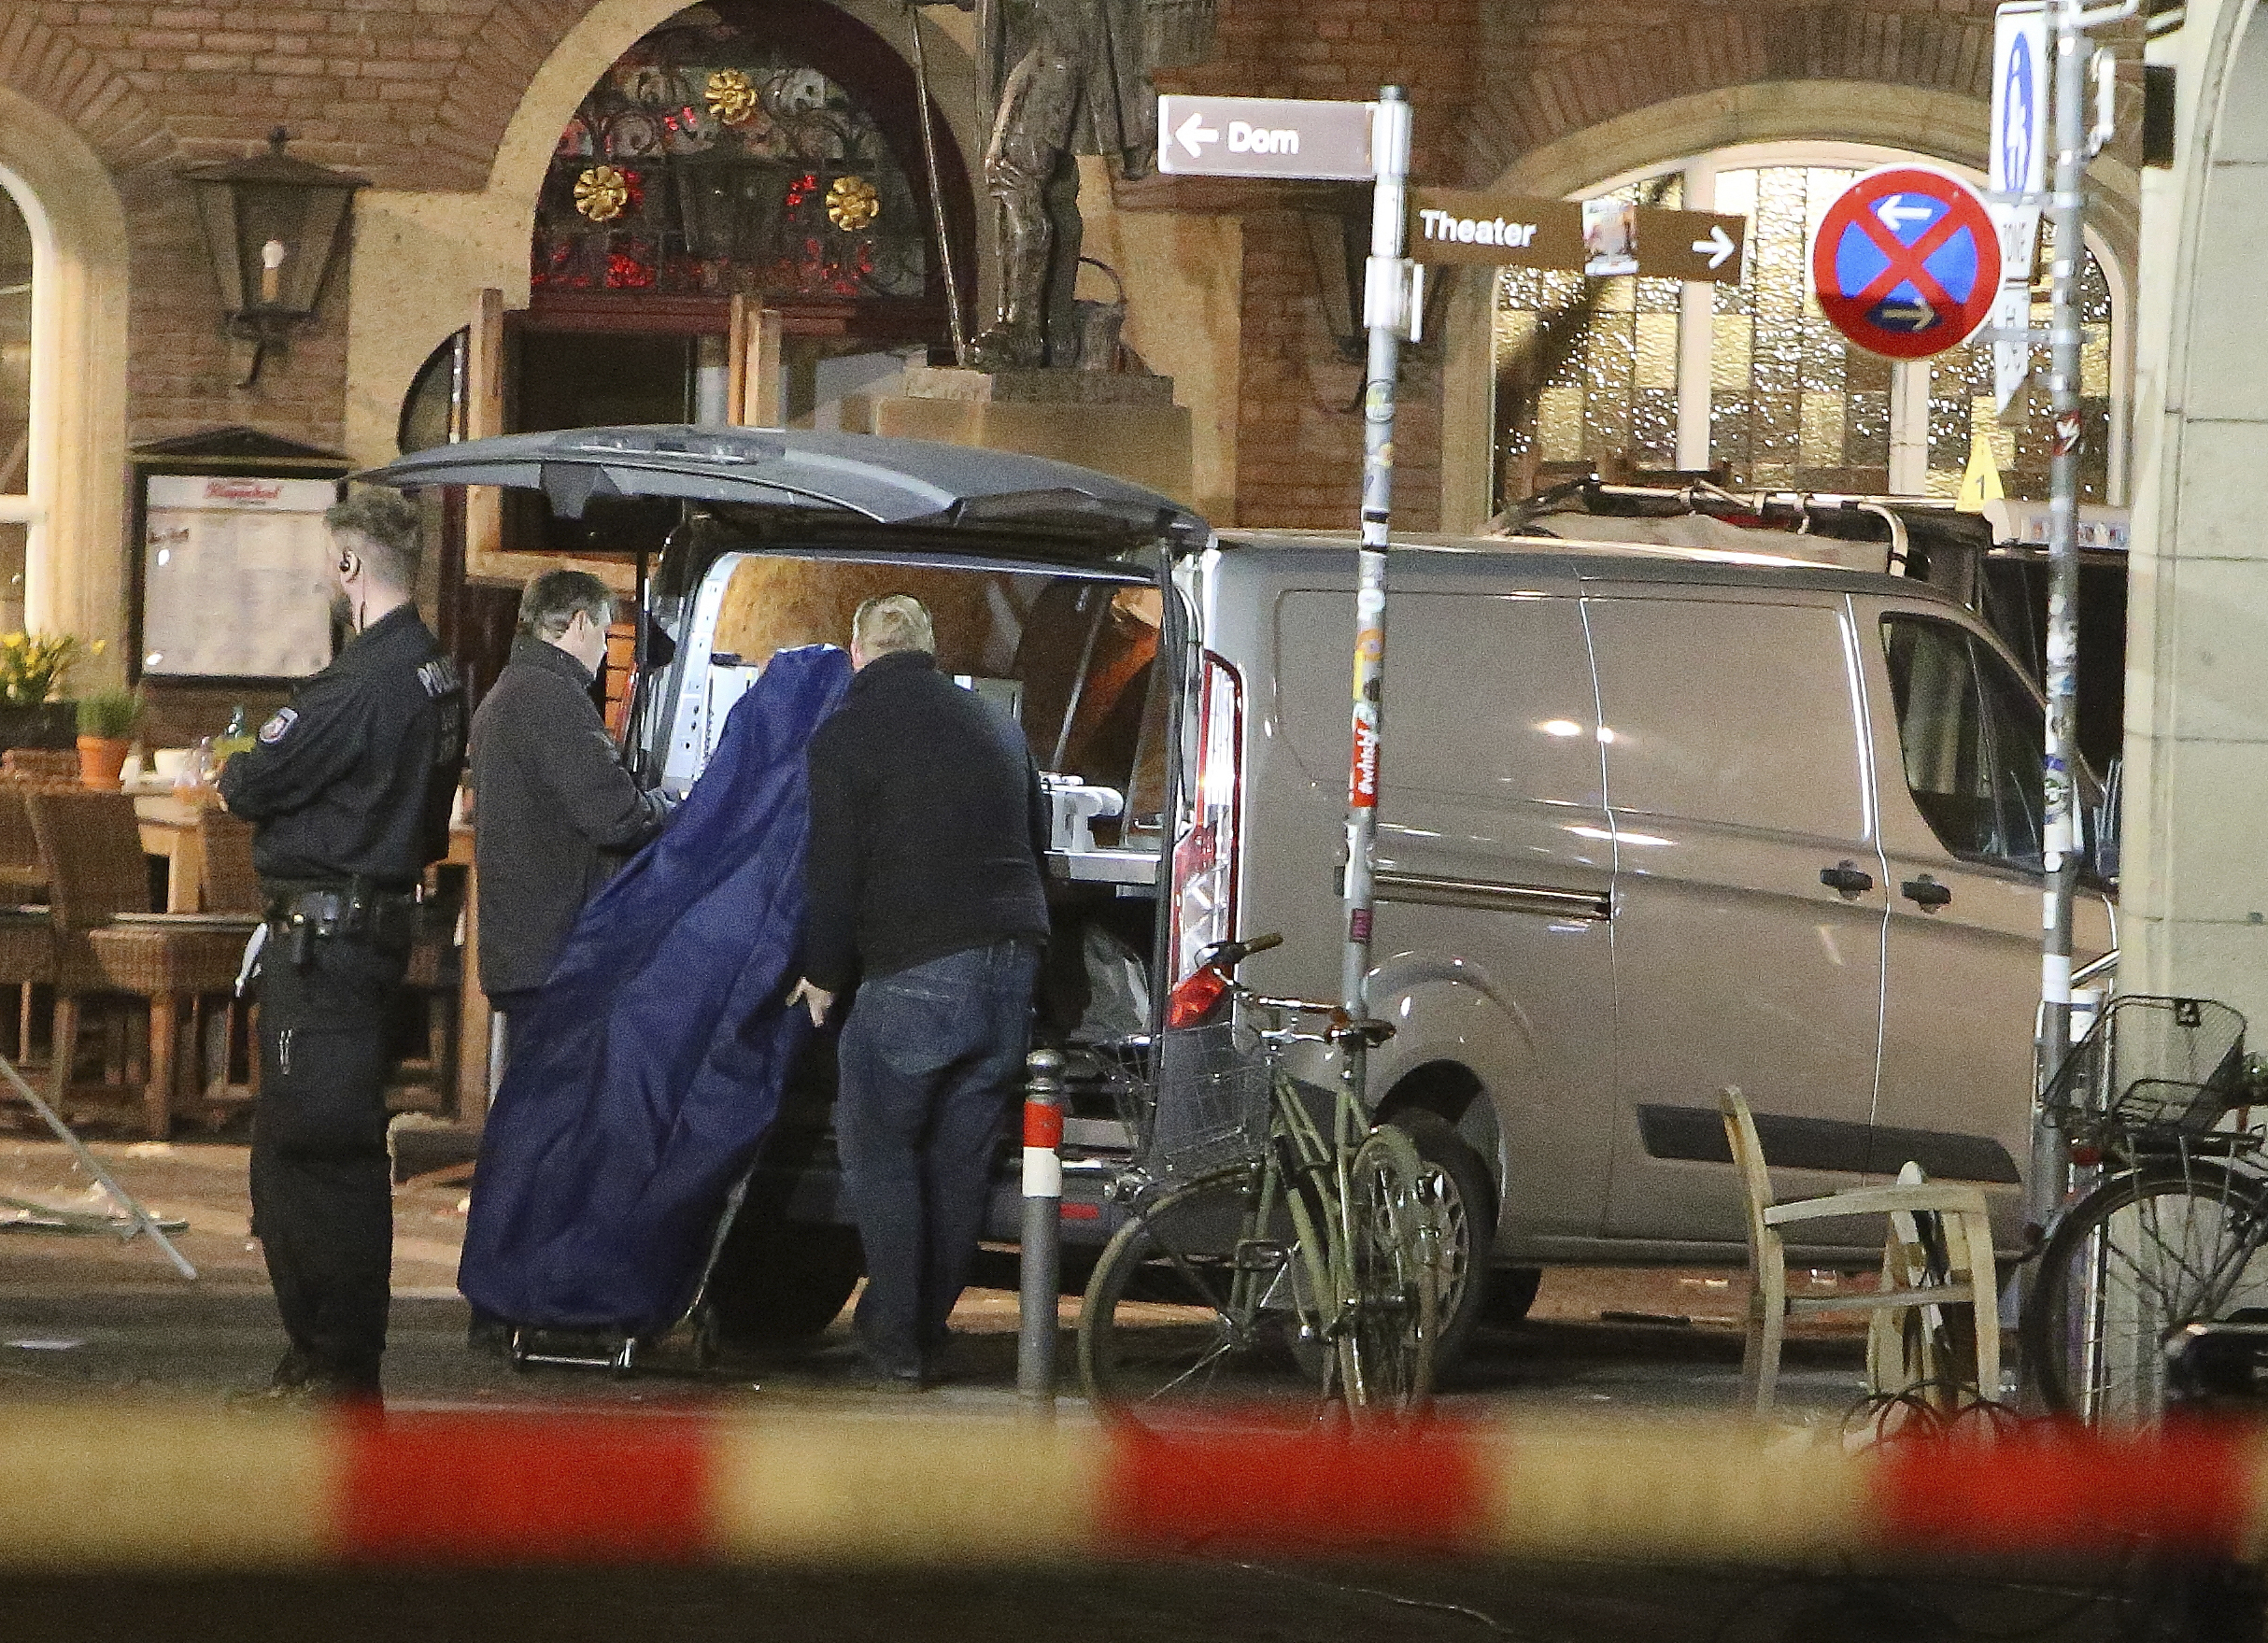 A body is loaded into a vehicle in front of a restaurant in Muenster, Germany, Sunday, April 8, 2018 after a vehicle crashed into a crowd. A van crashed into people drinking outside a popular bar Saturday in the German city of Muenster, killing two people and injuring 20 others before the driver of the vehicle shot and killed himself inside it, police said. (David Young/dpa via AP)